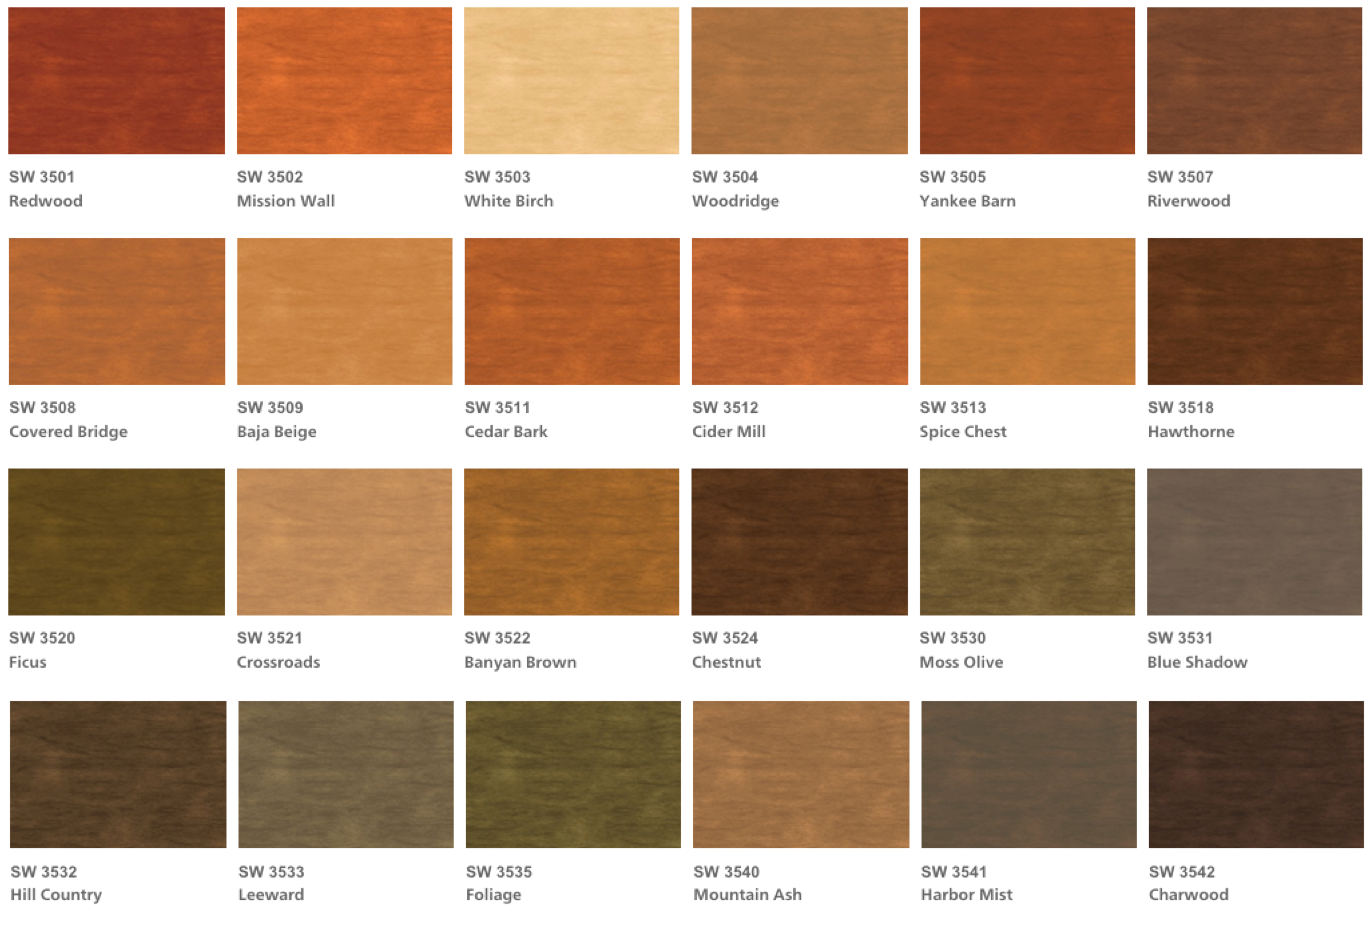 The available siding colors for Cripple Creek Cabins.